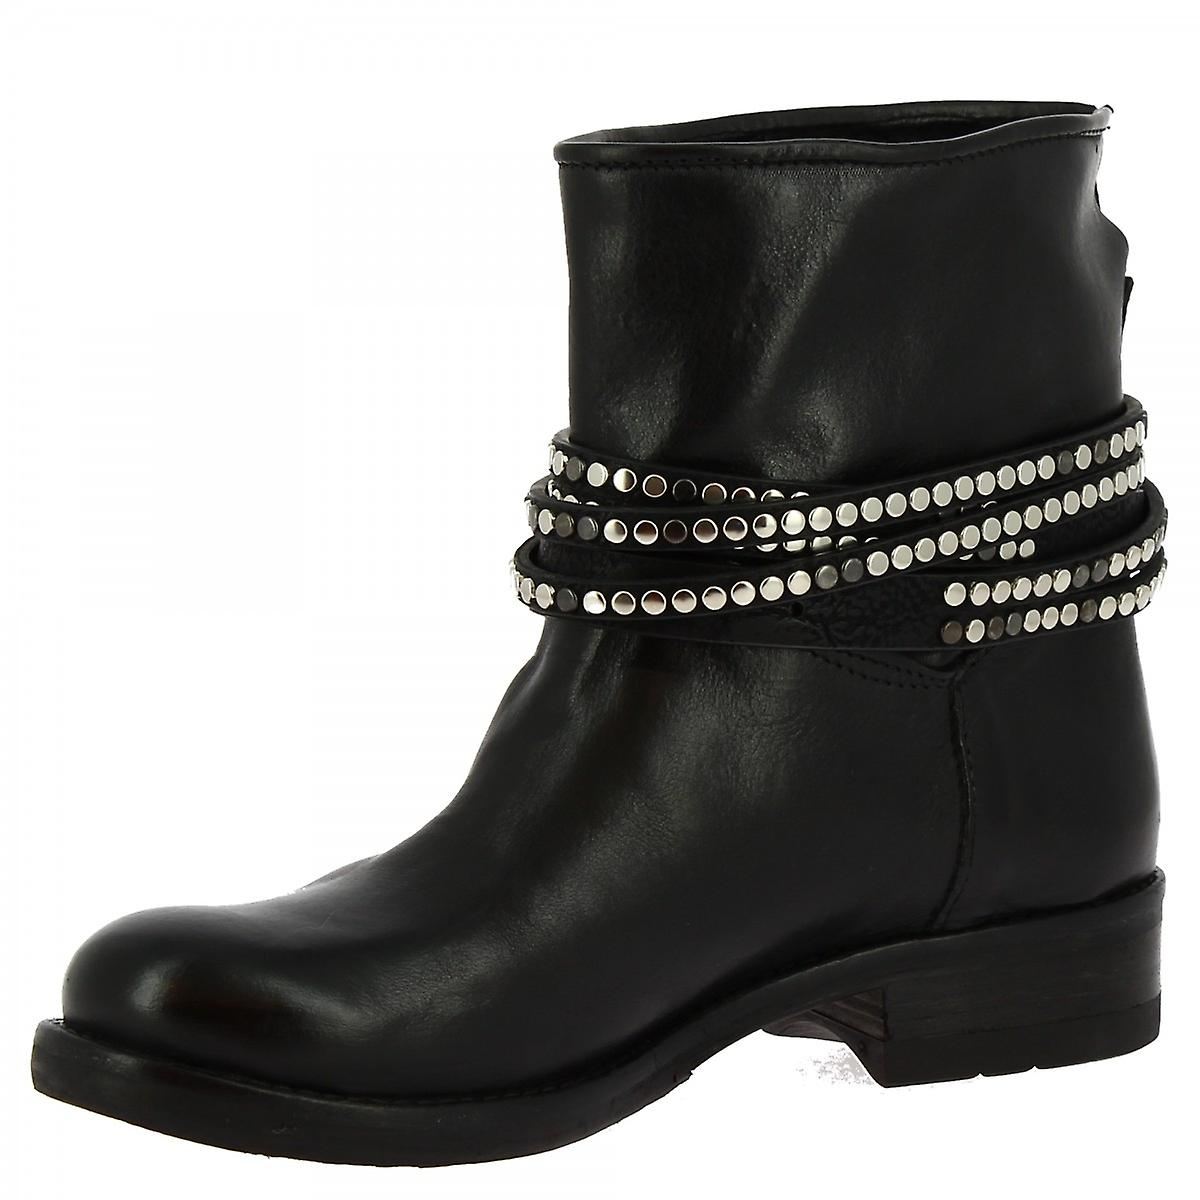 Leonardo Shoes Women's handmade ankle boots black calf leather strap and buckle